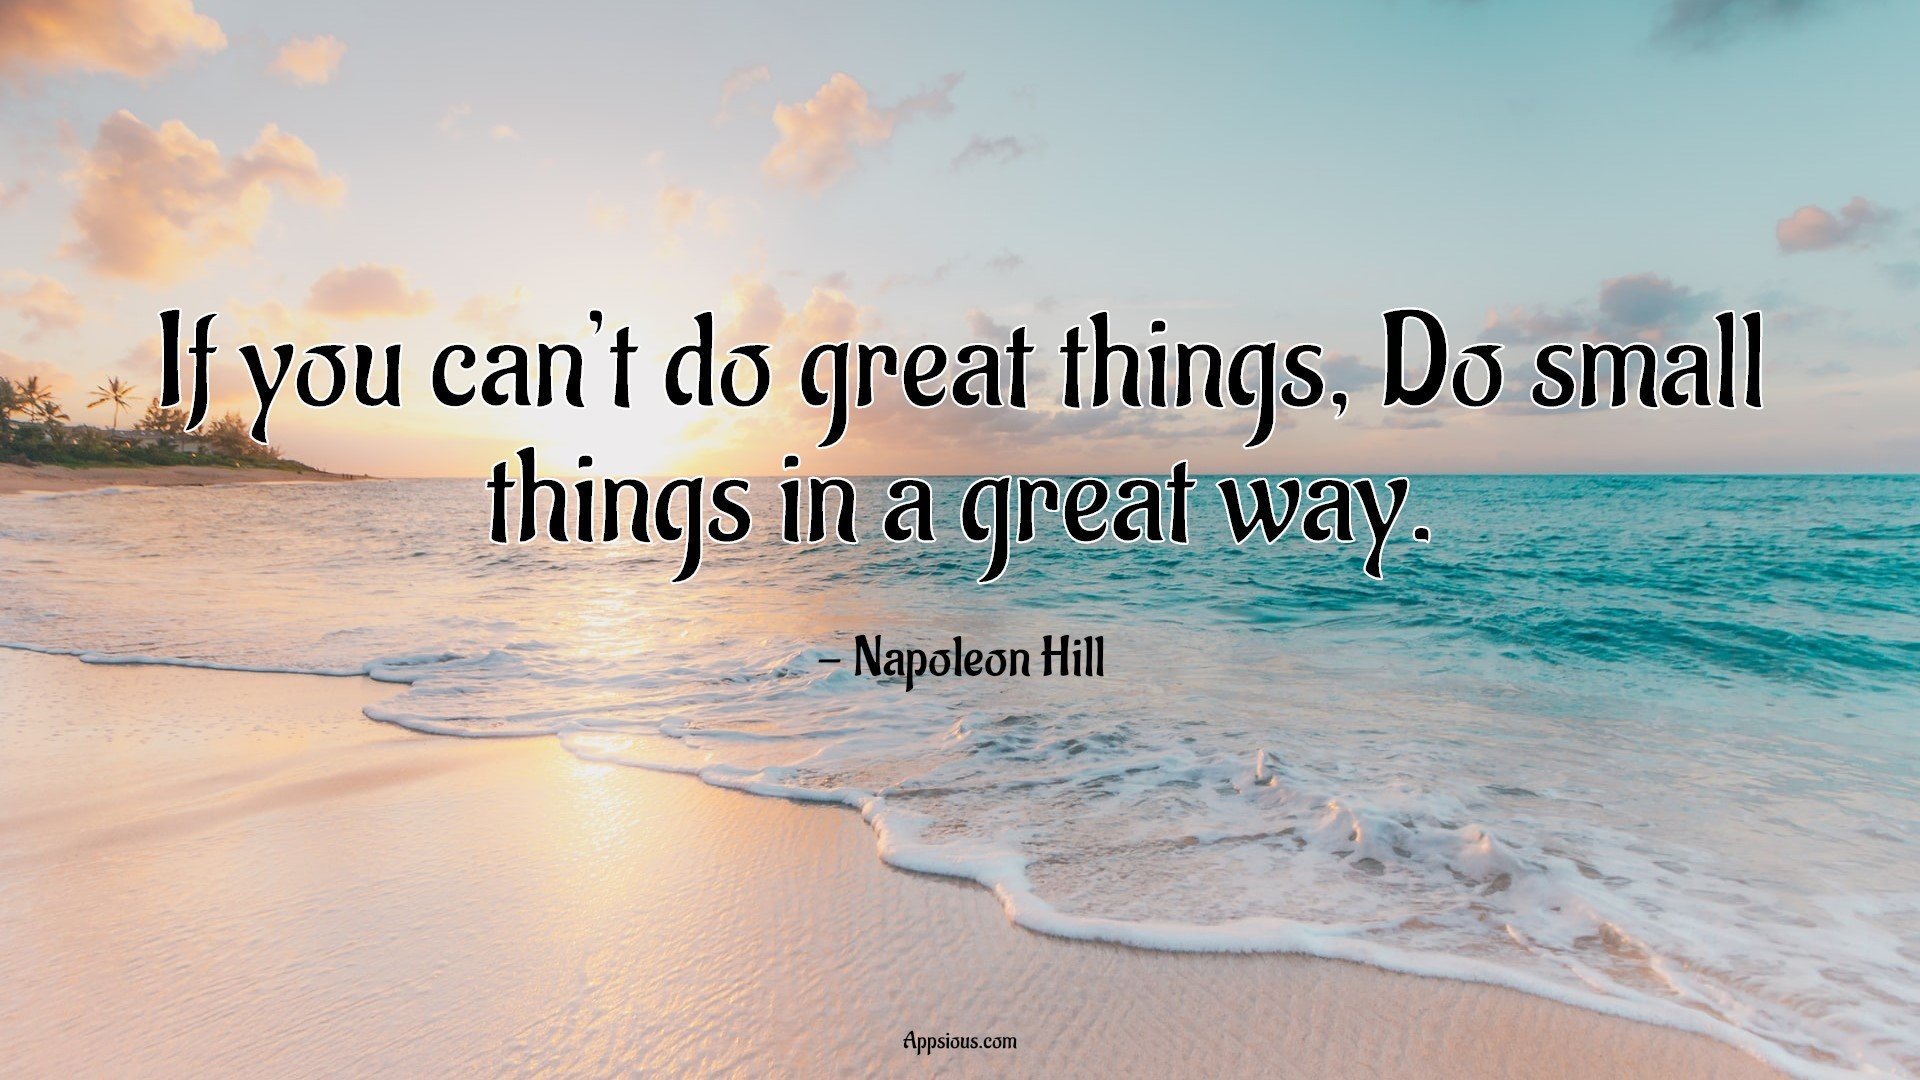 If you can't do great things, Do small things in a great way.